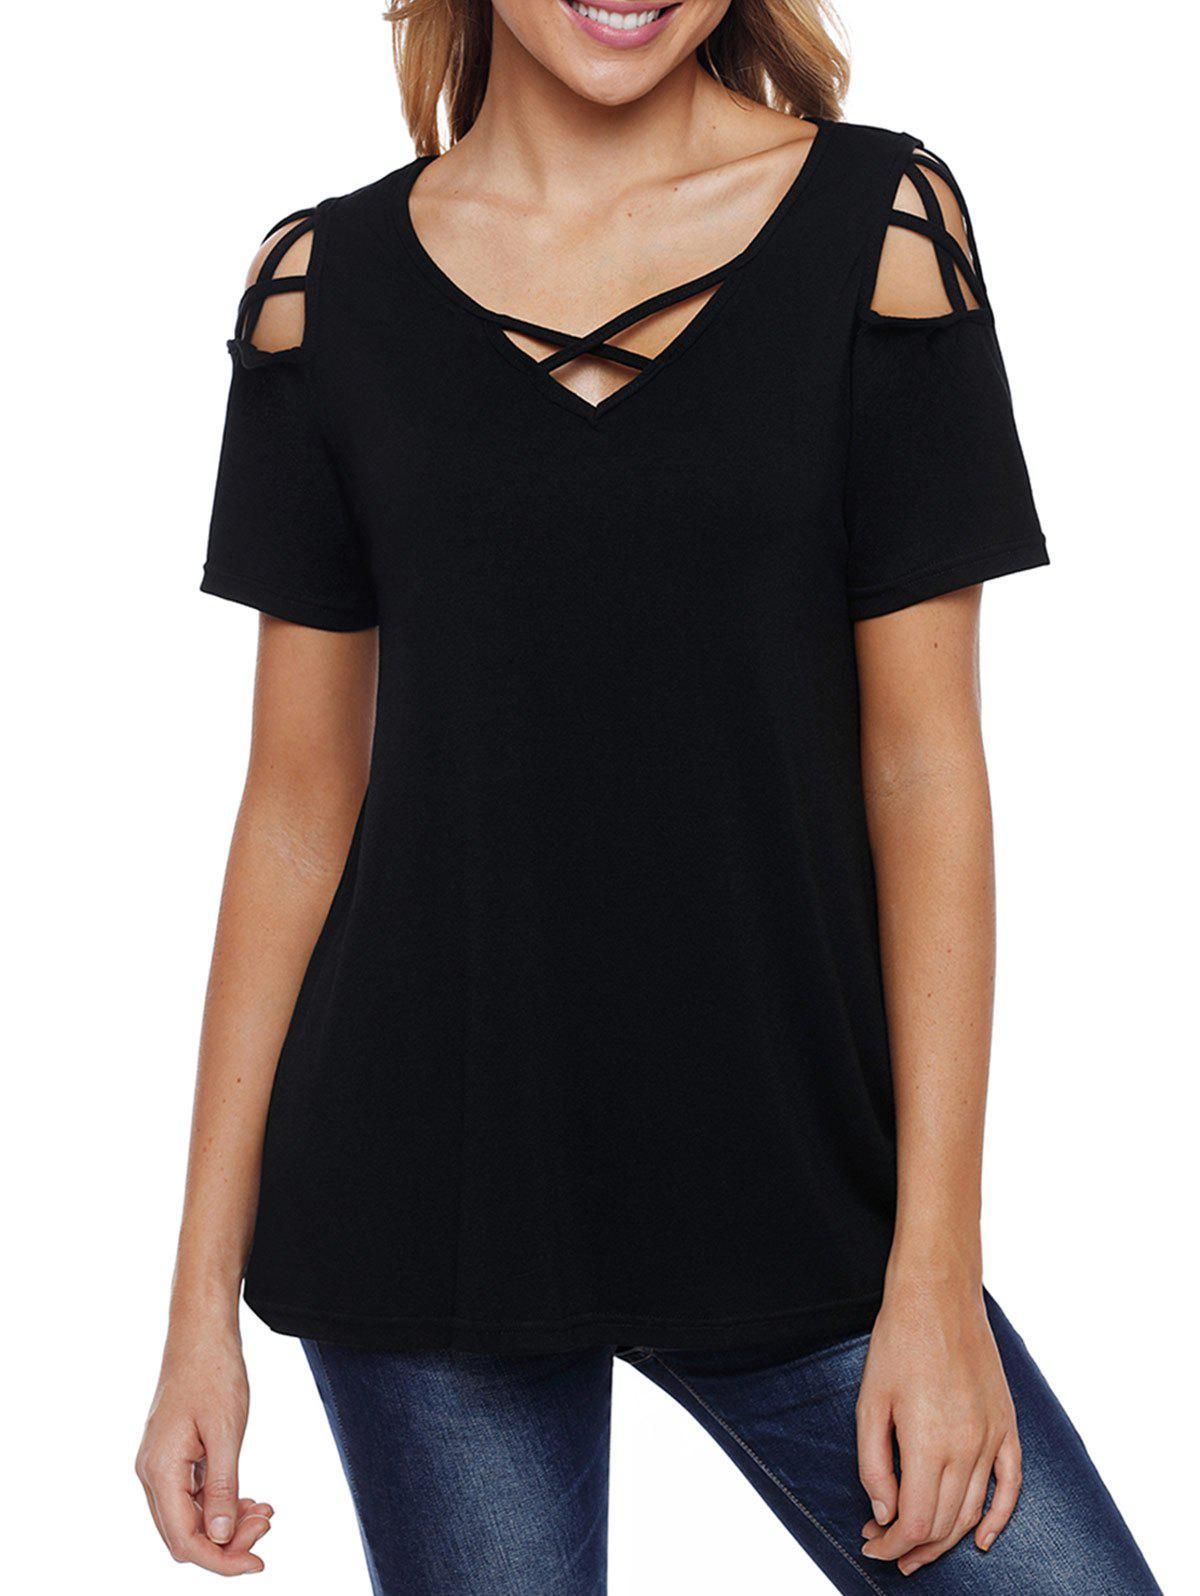 New V Neck Criss Cross Sleeve T-shirt